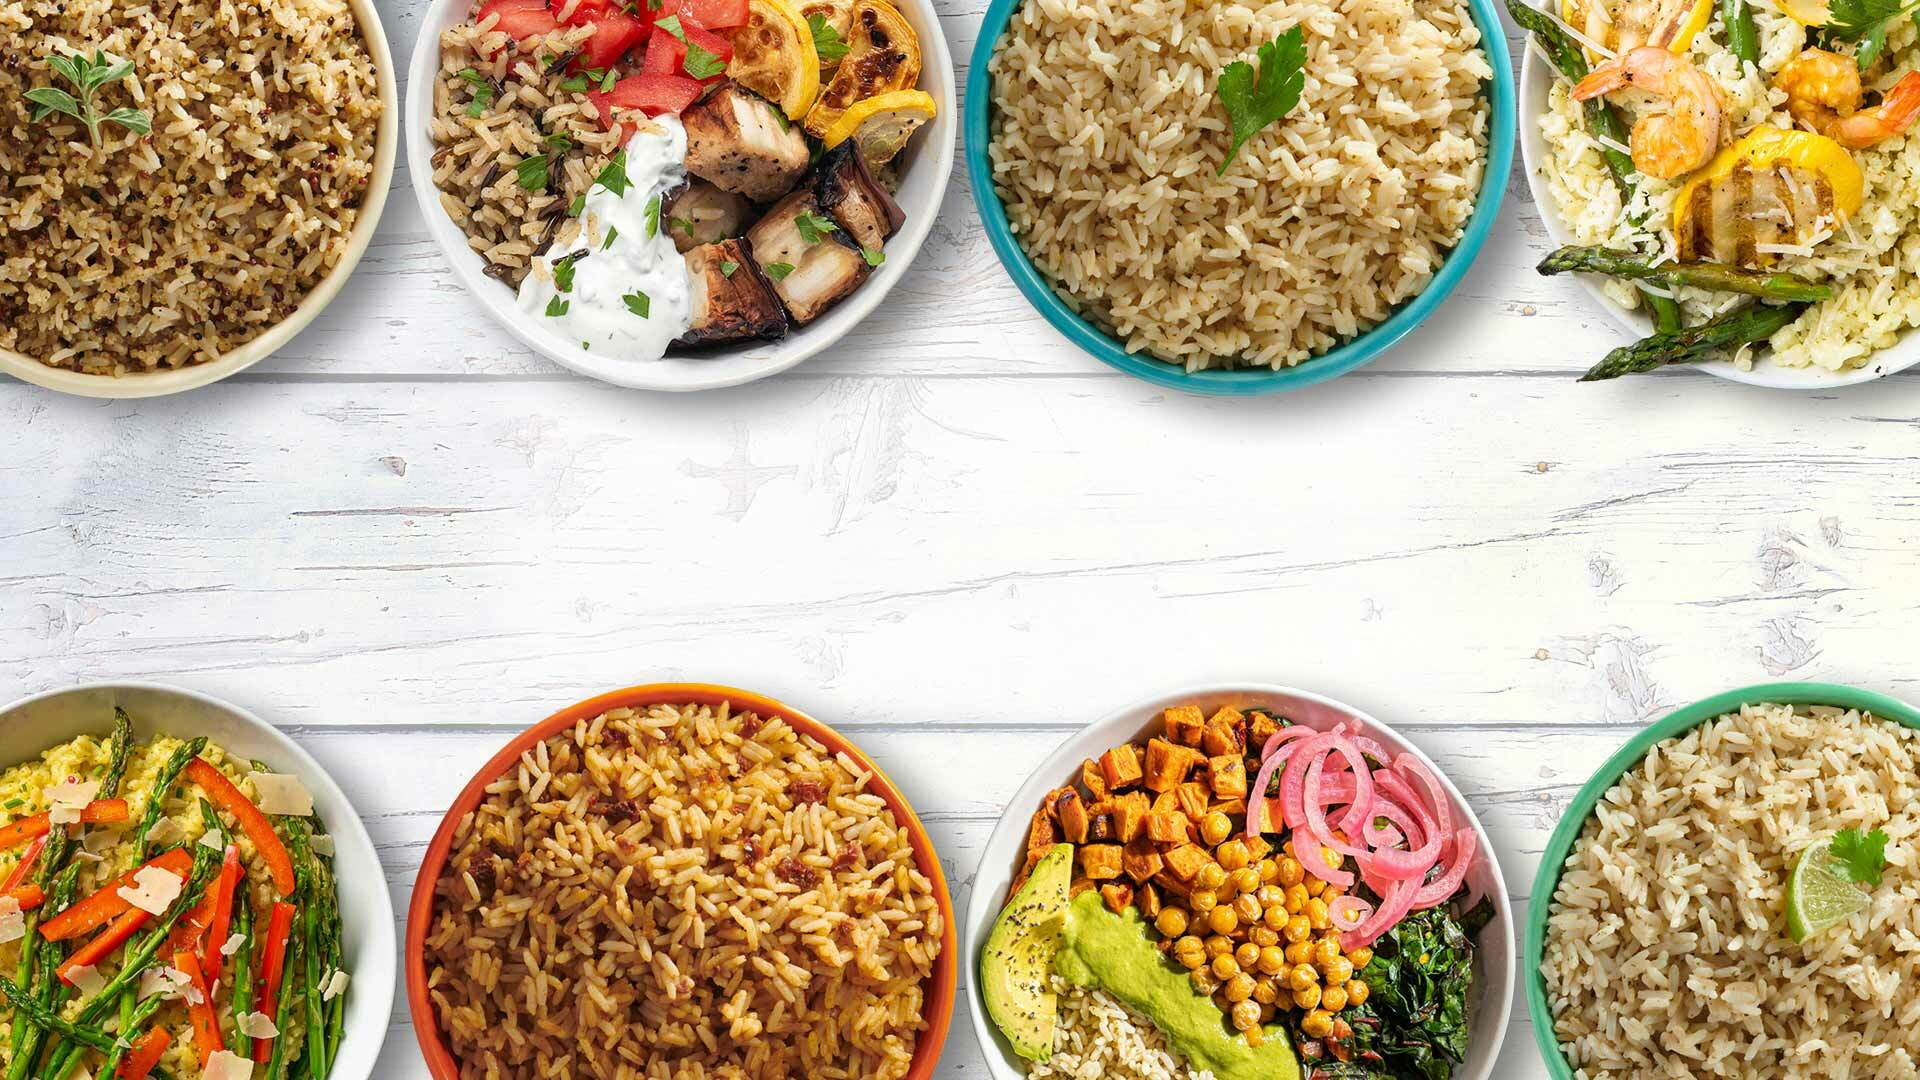 Bowls of cooked rice dishes on white table